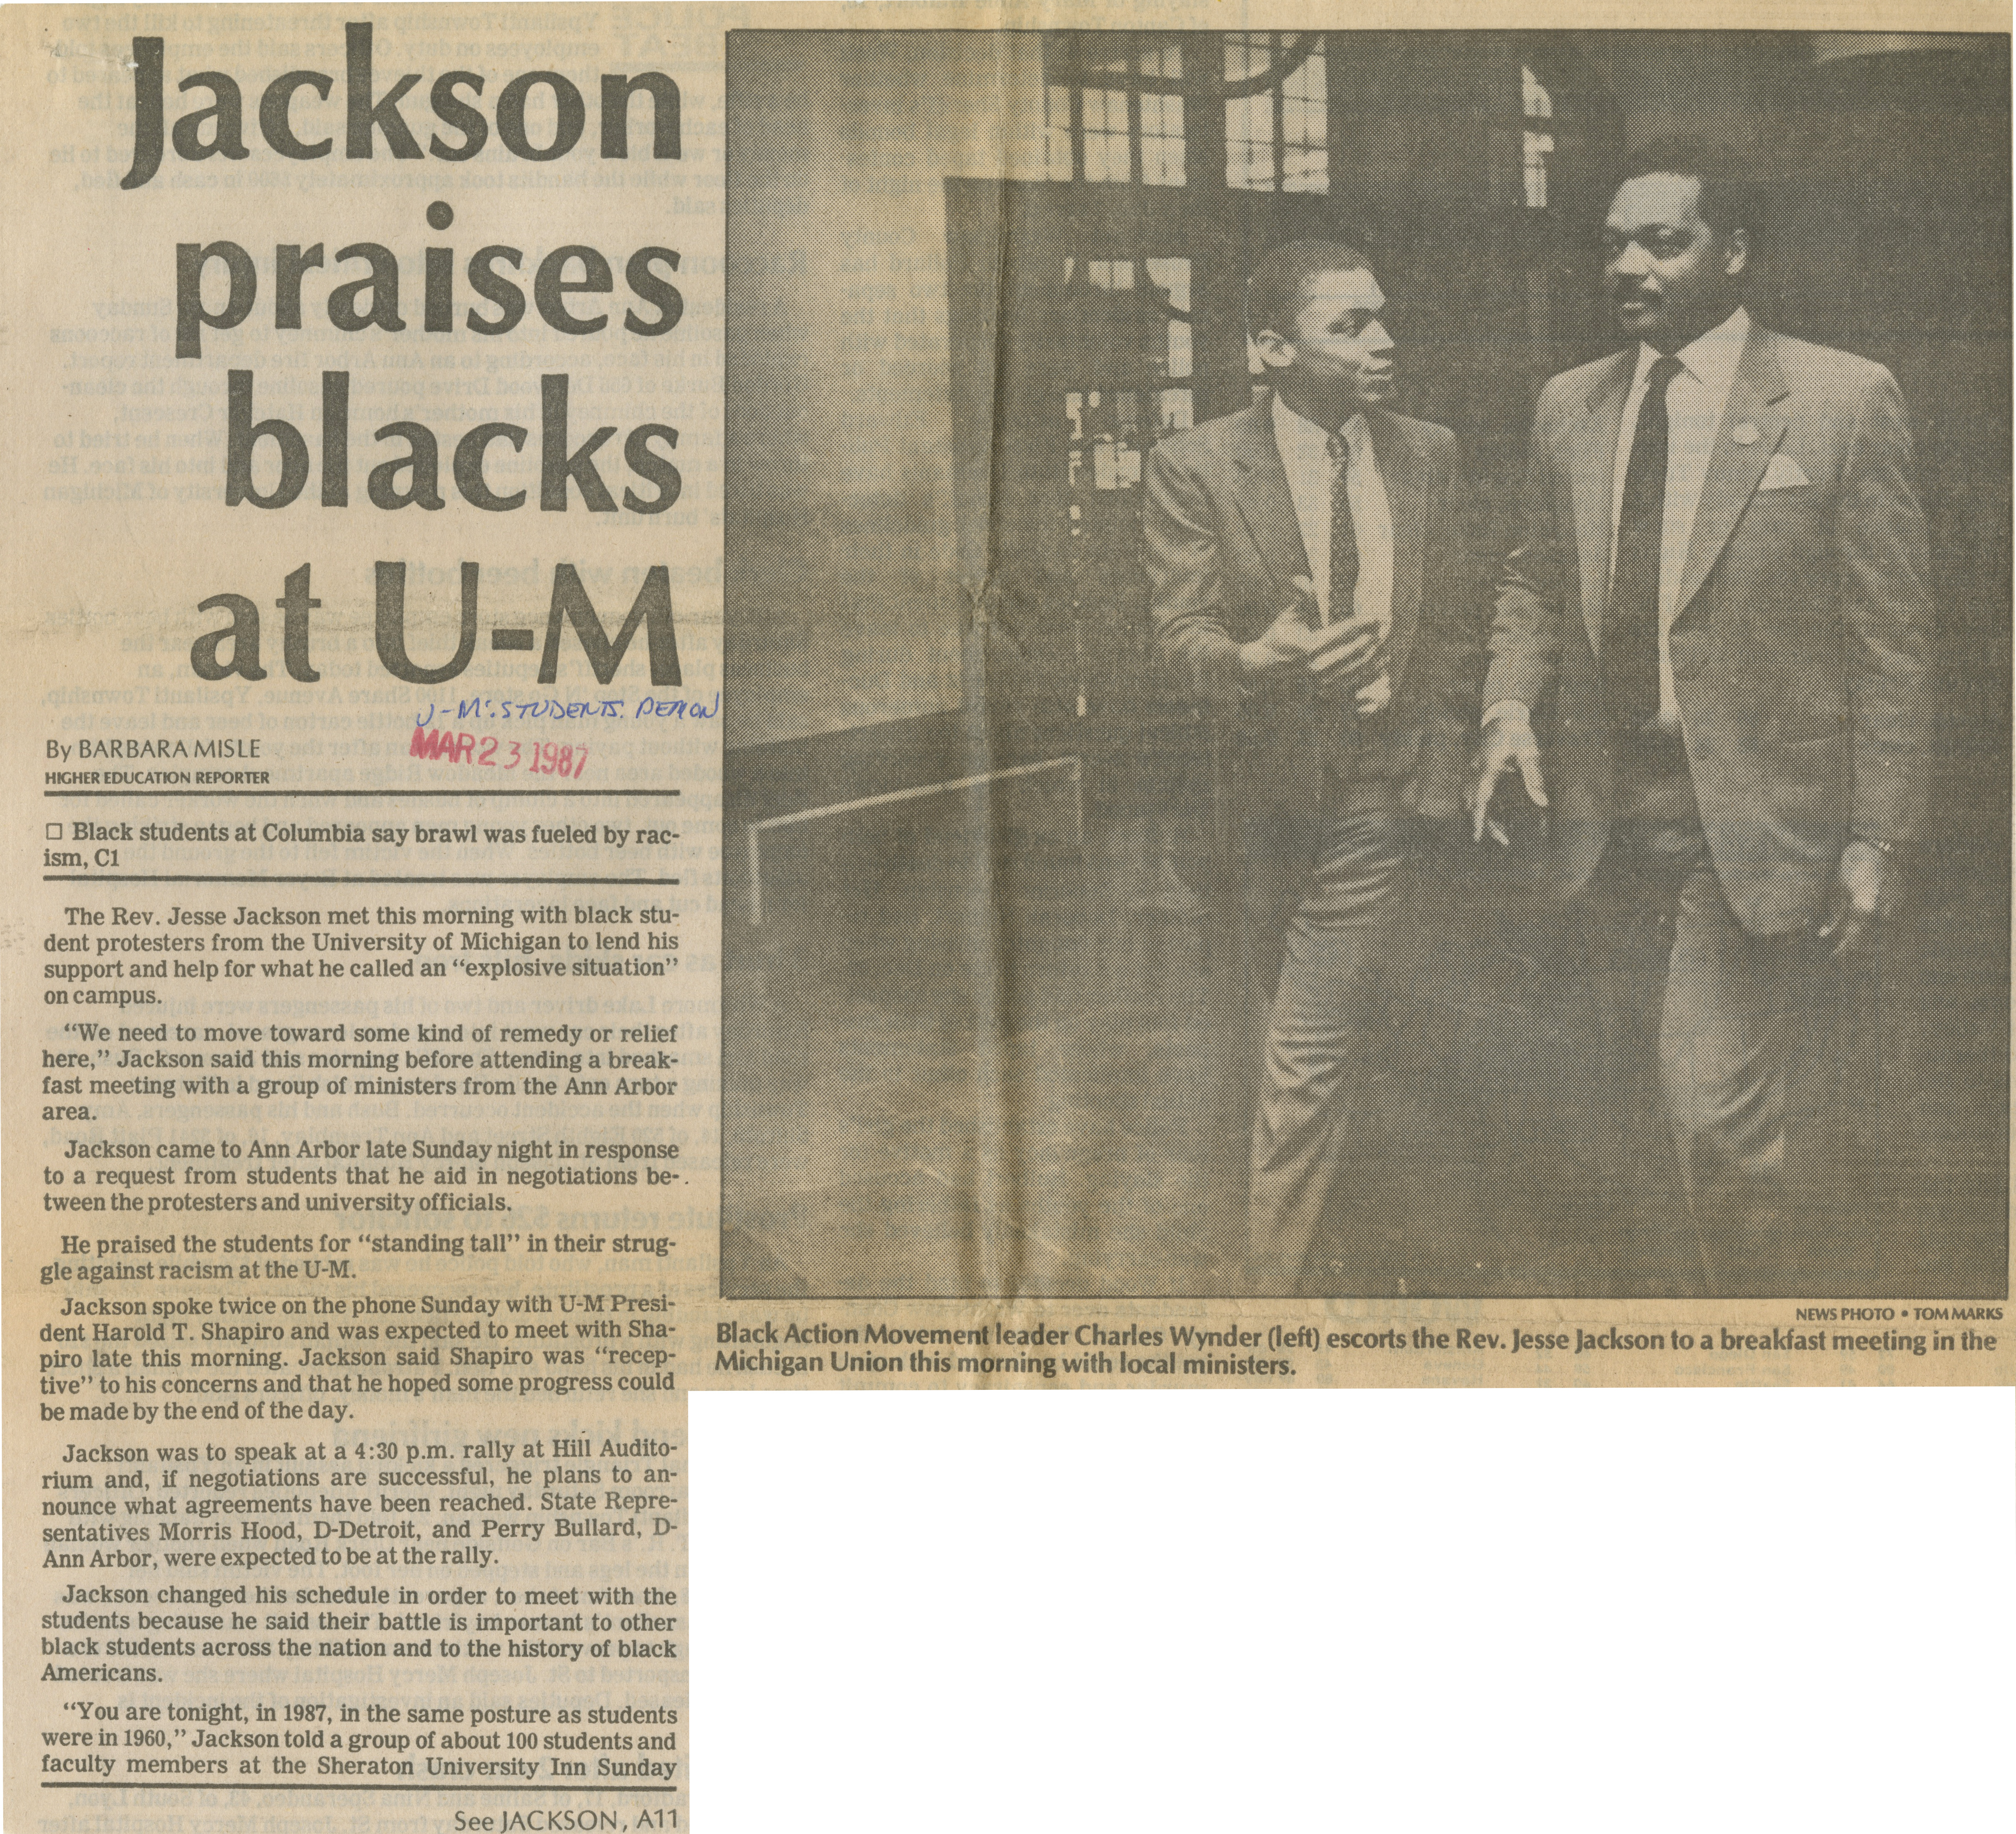 Jackson Praises Blacks At U-M image